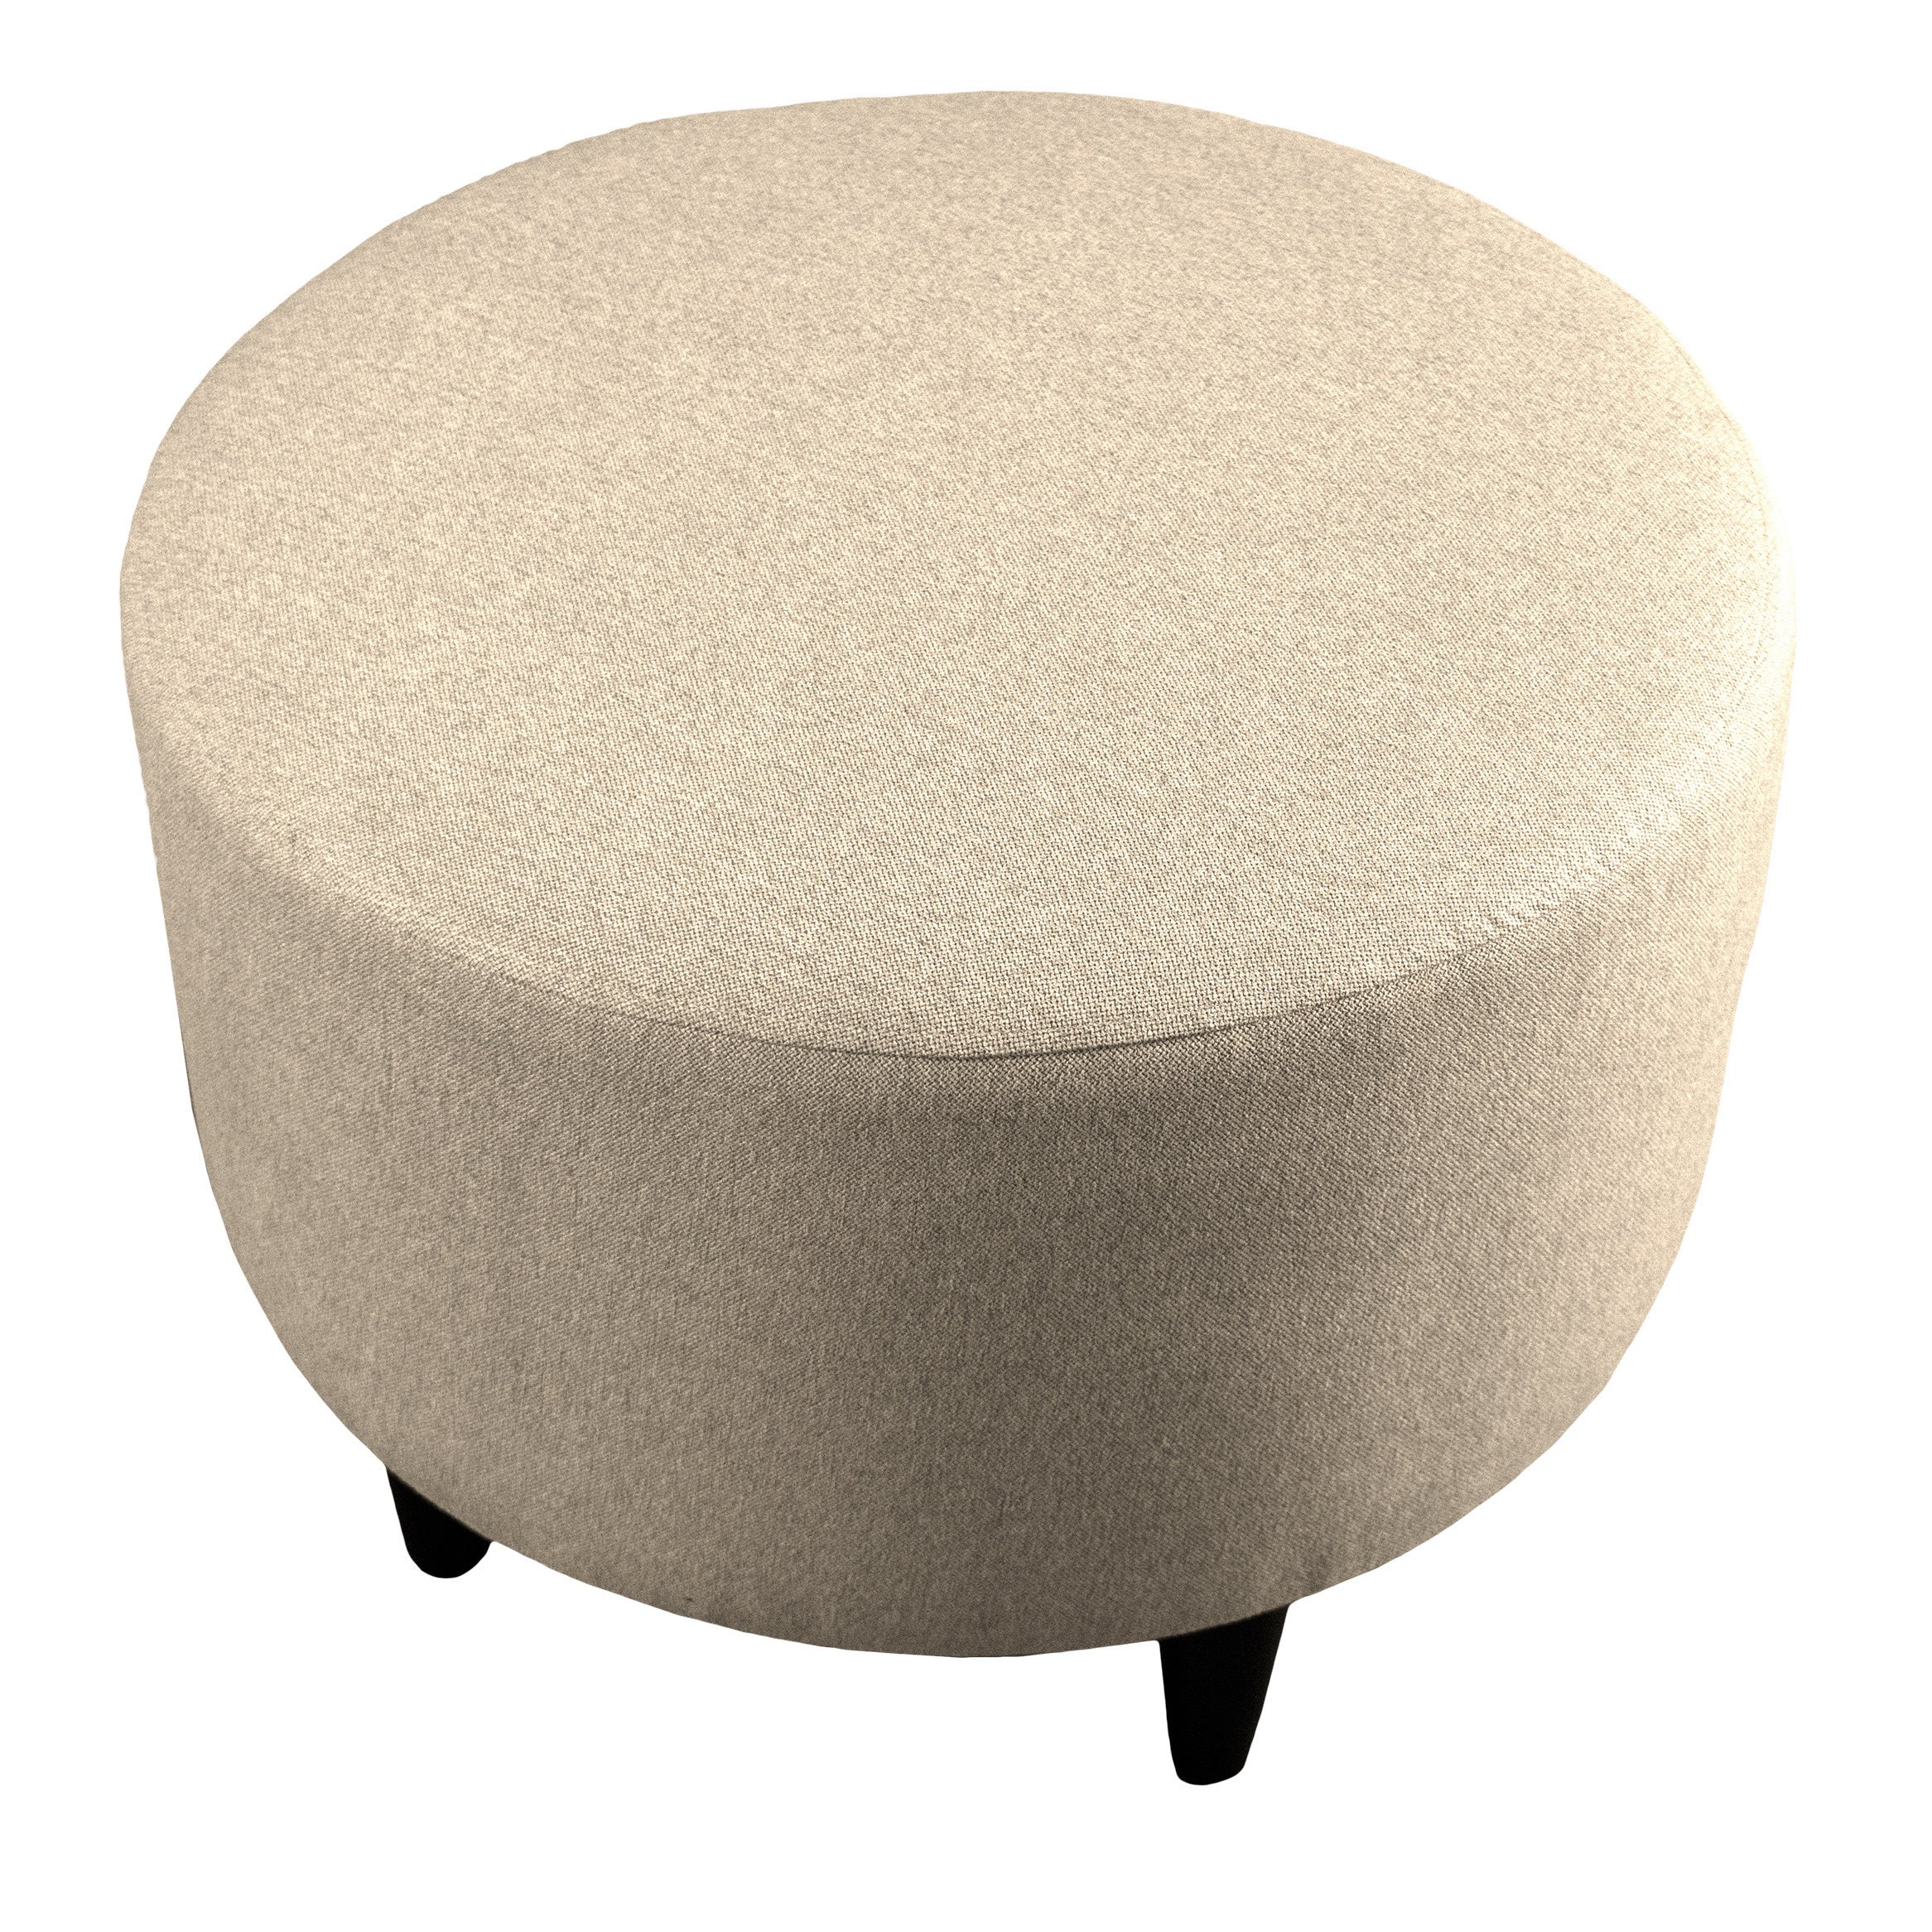 Shop mjl furniture sophia dawson7 round upholstered ottoman on sale free shipping today overstock com 11324434